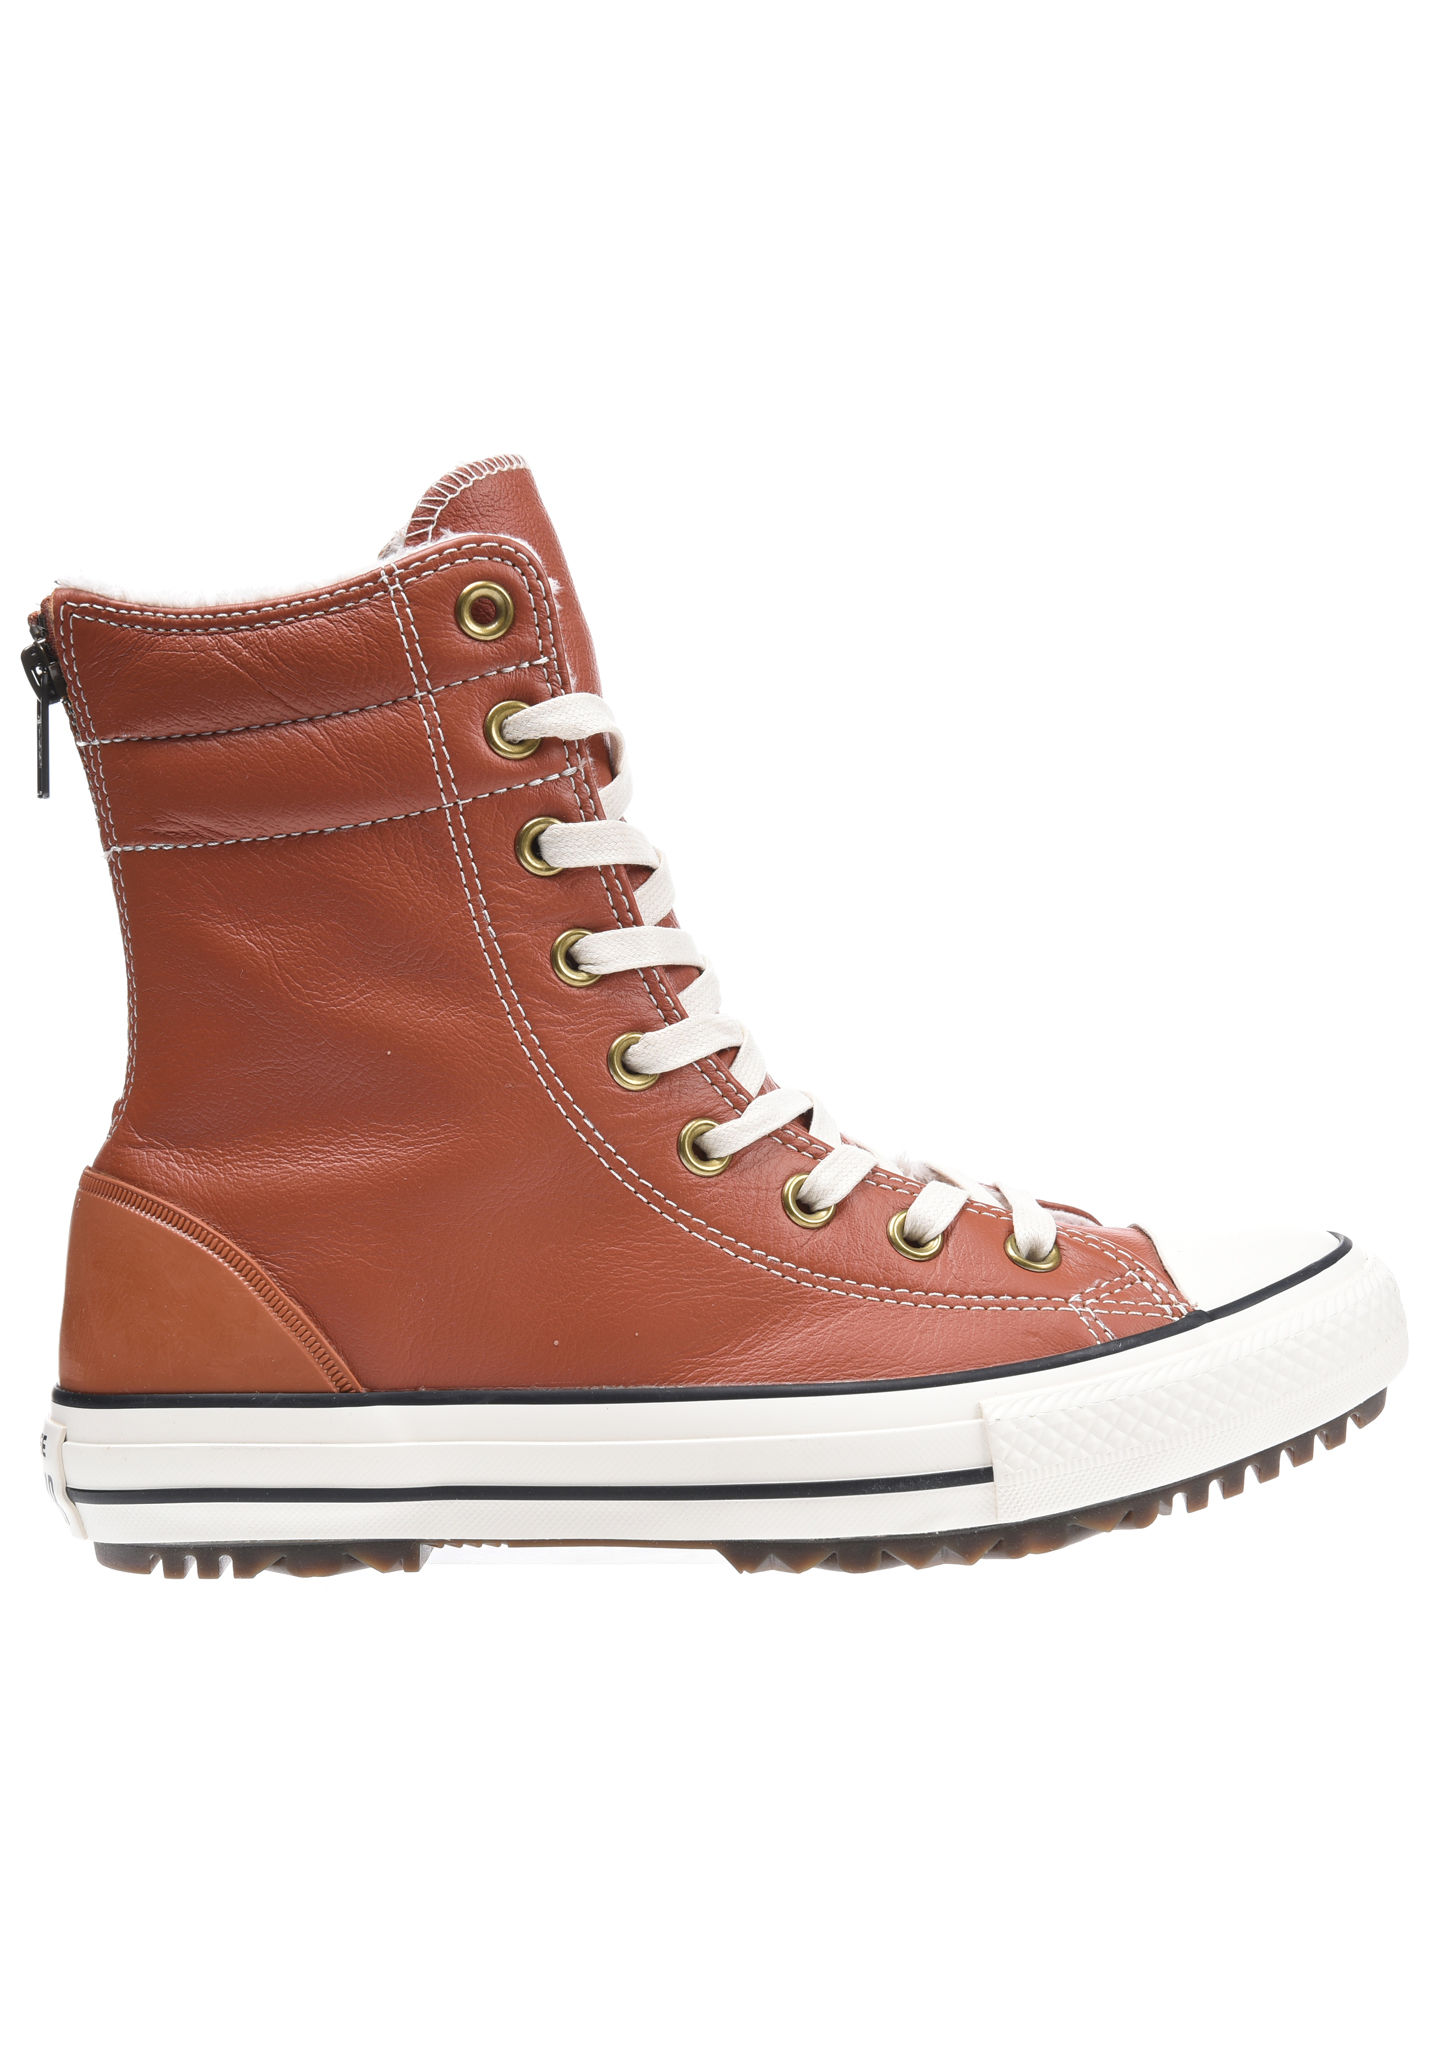 19f41a7907fa Converse Chuck Taylor All Star Hi-Rise Lthr - Boots for Women - Brown -  Planet Sports